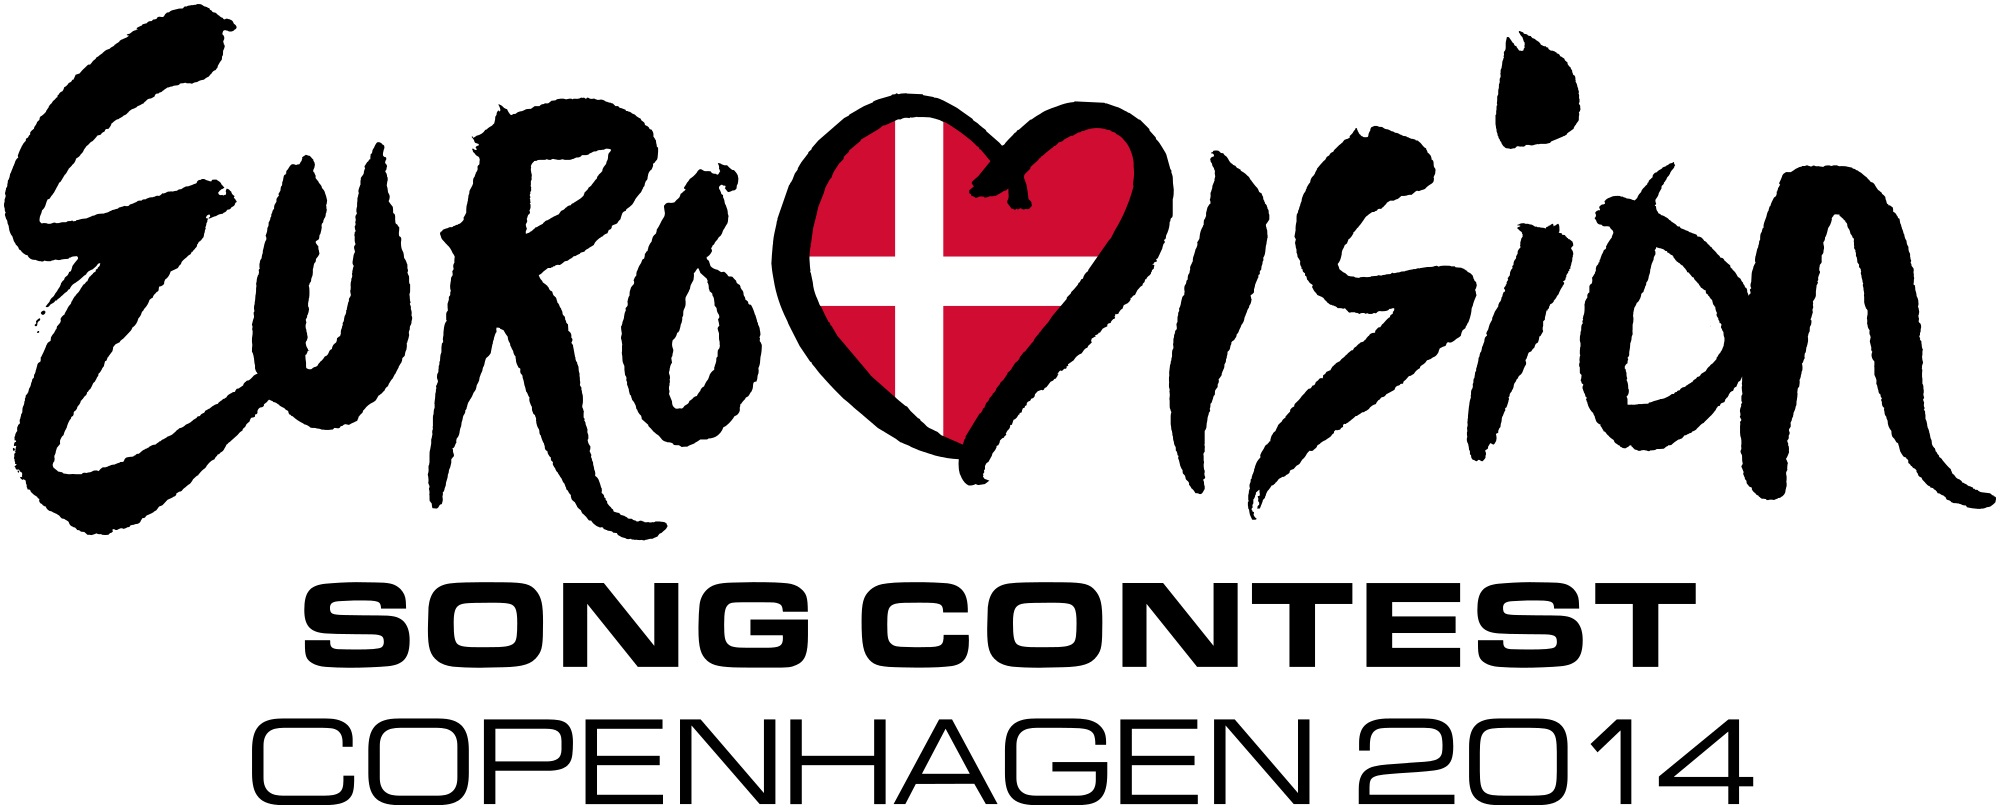 Eurovision_Song_Contest_2014_logo